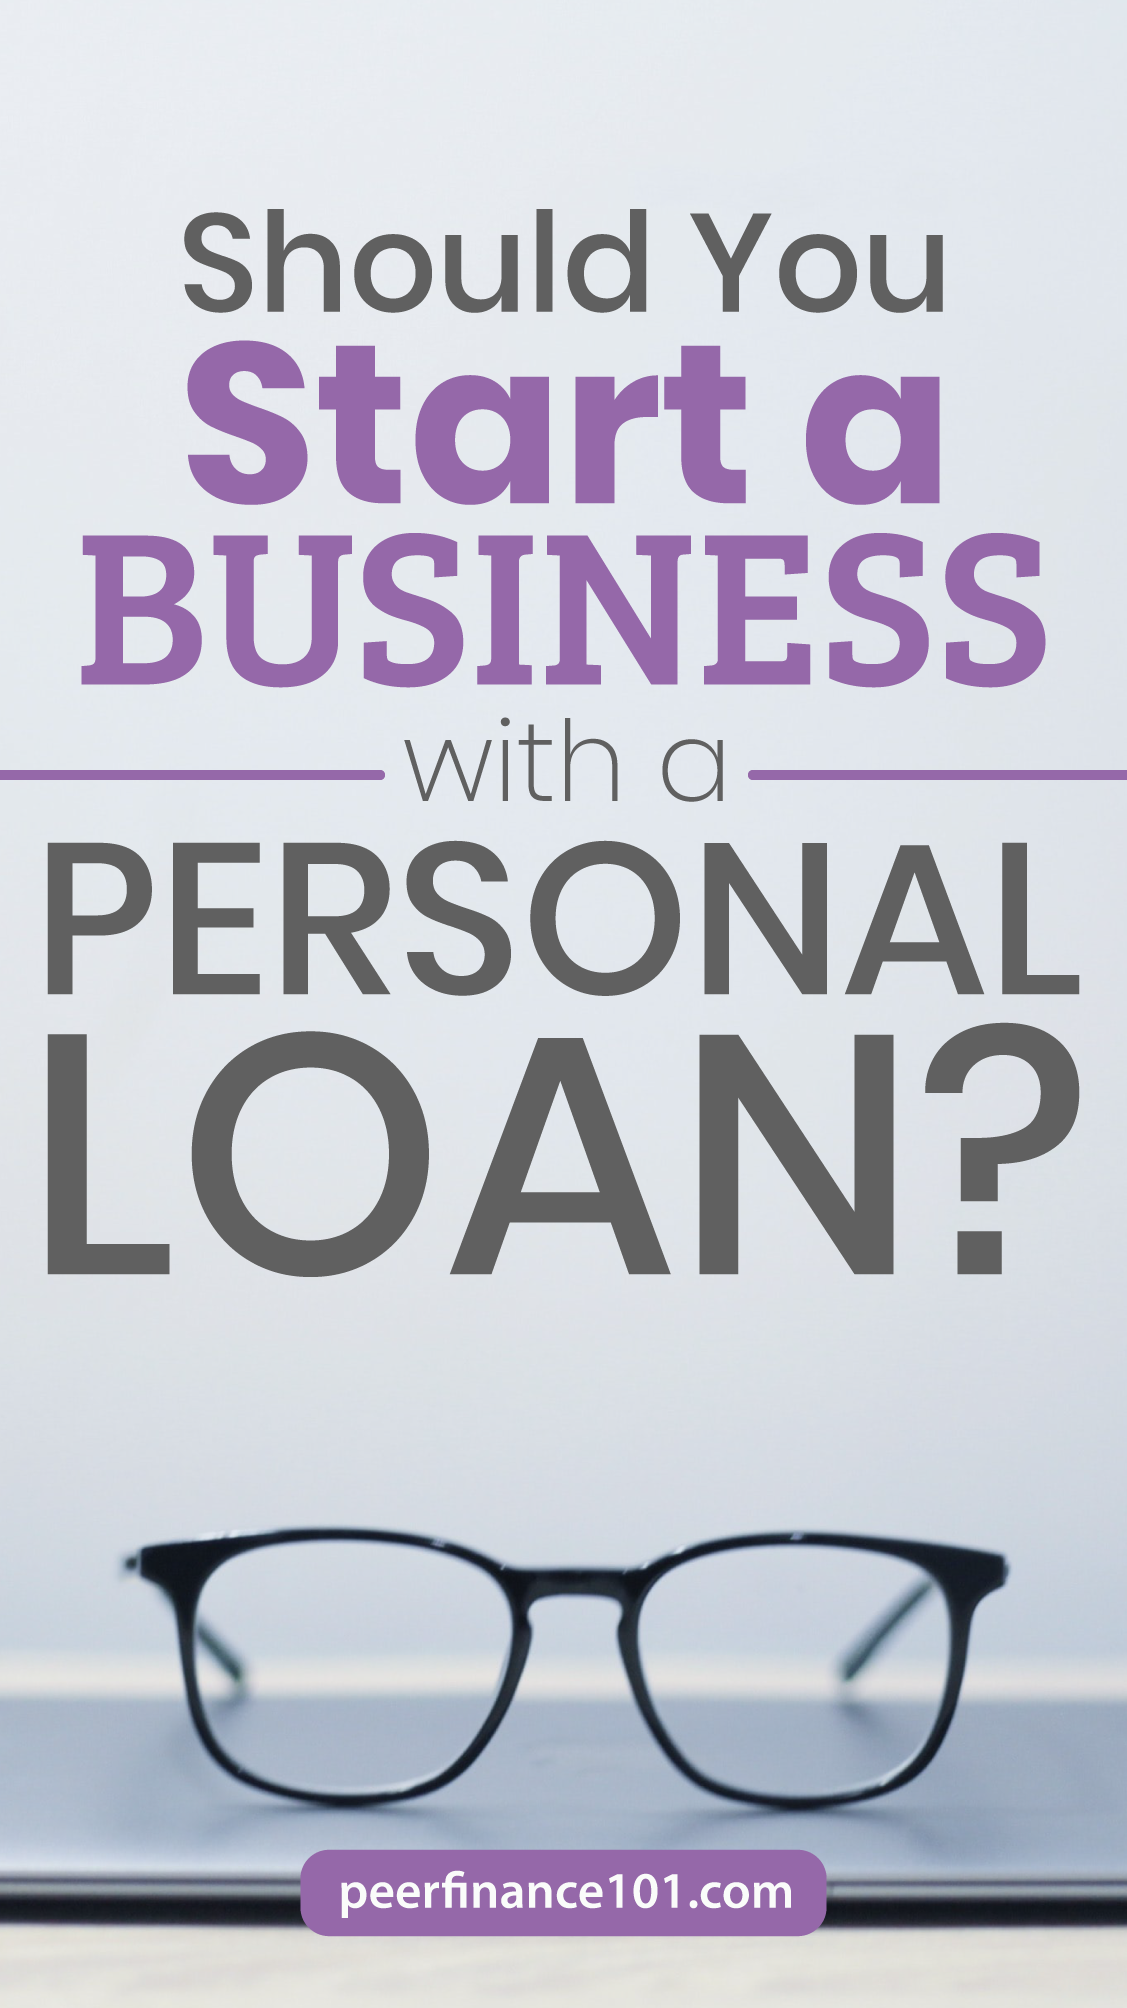 Starting A Business With A Personal Loan 3 Loan Rules In 2020 Personal Loans Small Business Success Starting A Business